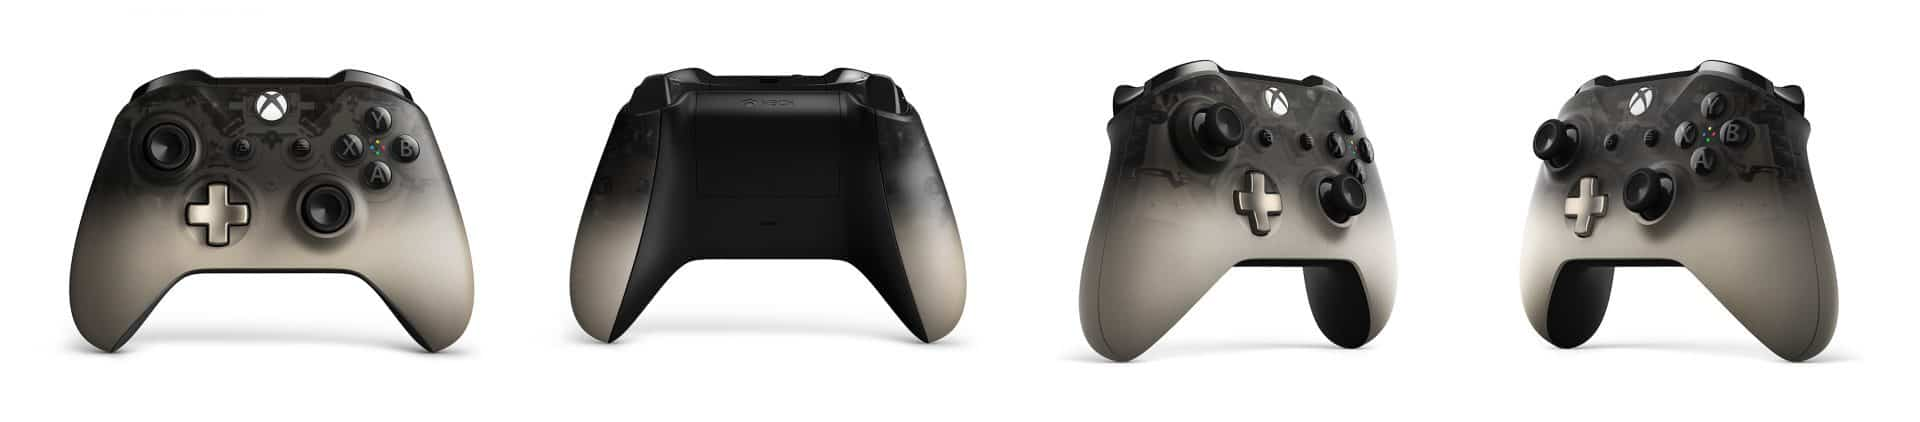 Microsoft unveils new Phantom Black and Grey/Blue Xbox controllers OnMSFT.com August 14, 2018